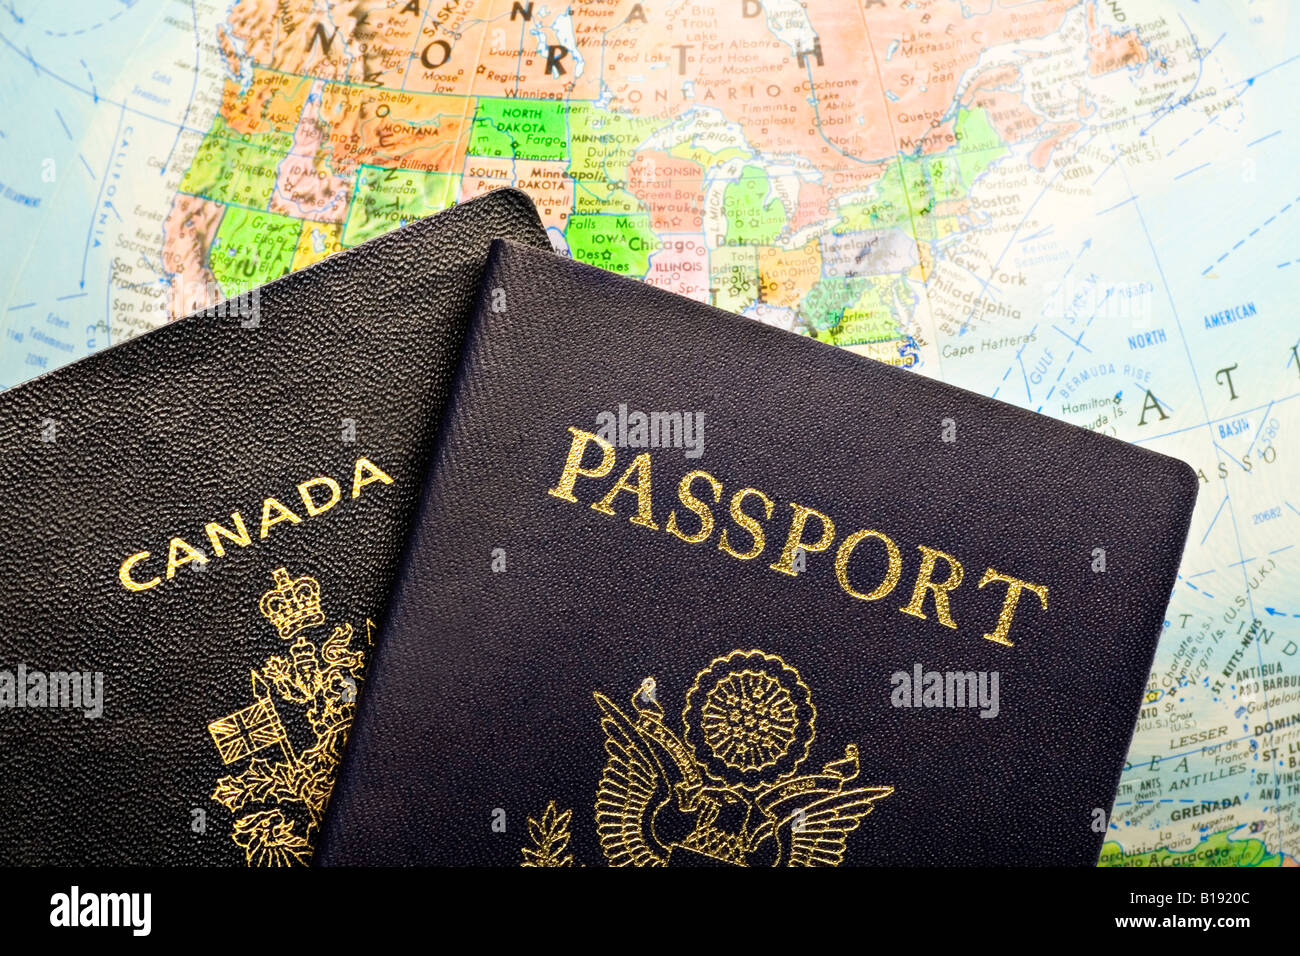 Passports laid over a map of North America - Stock Image